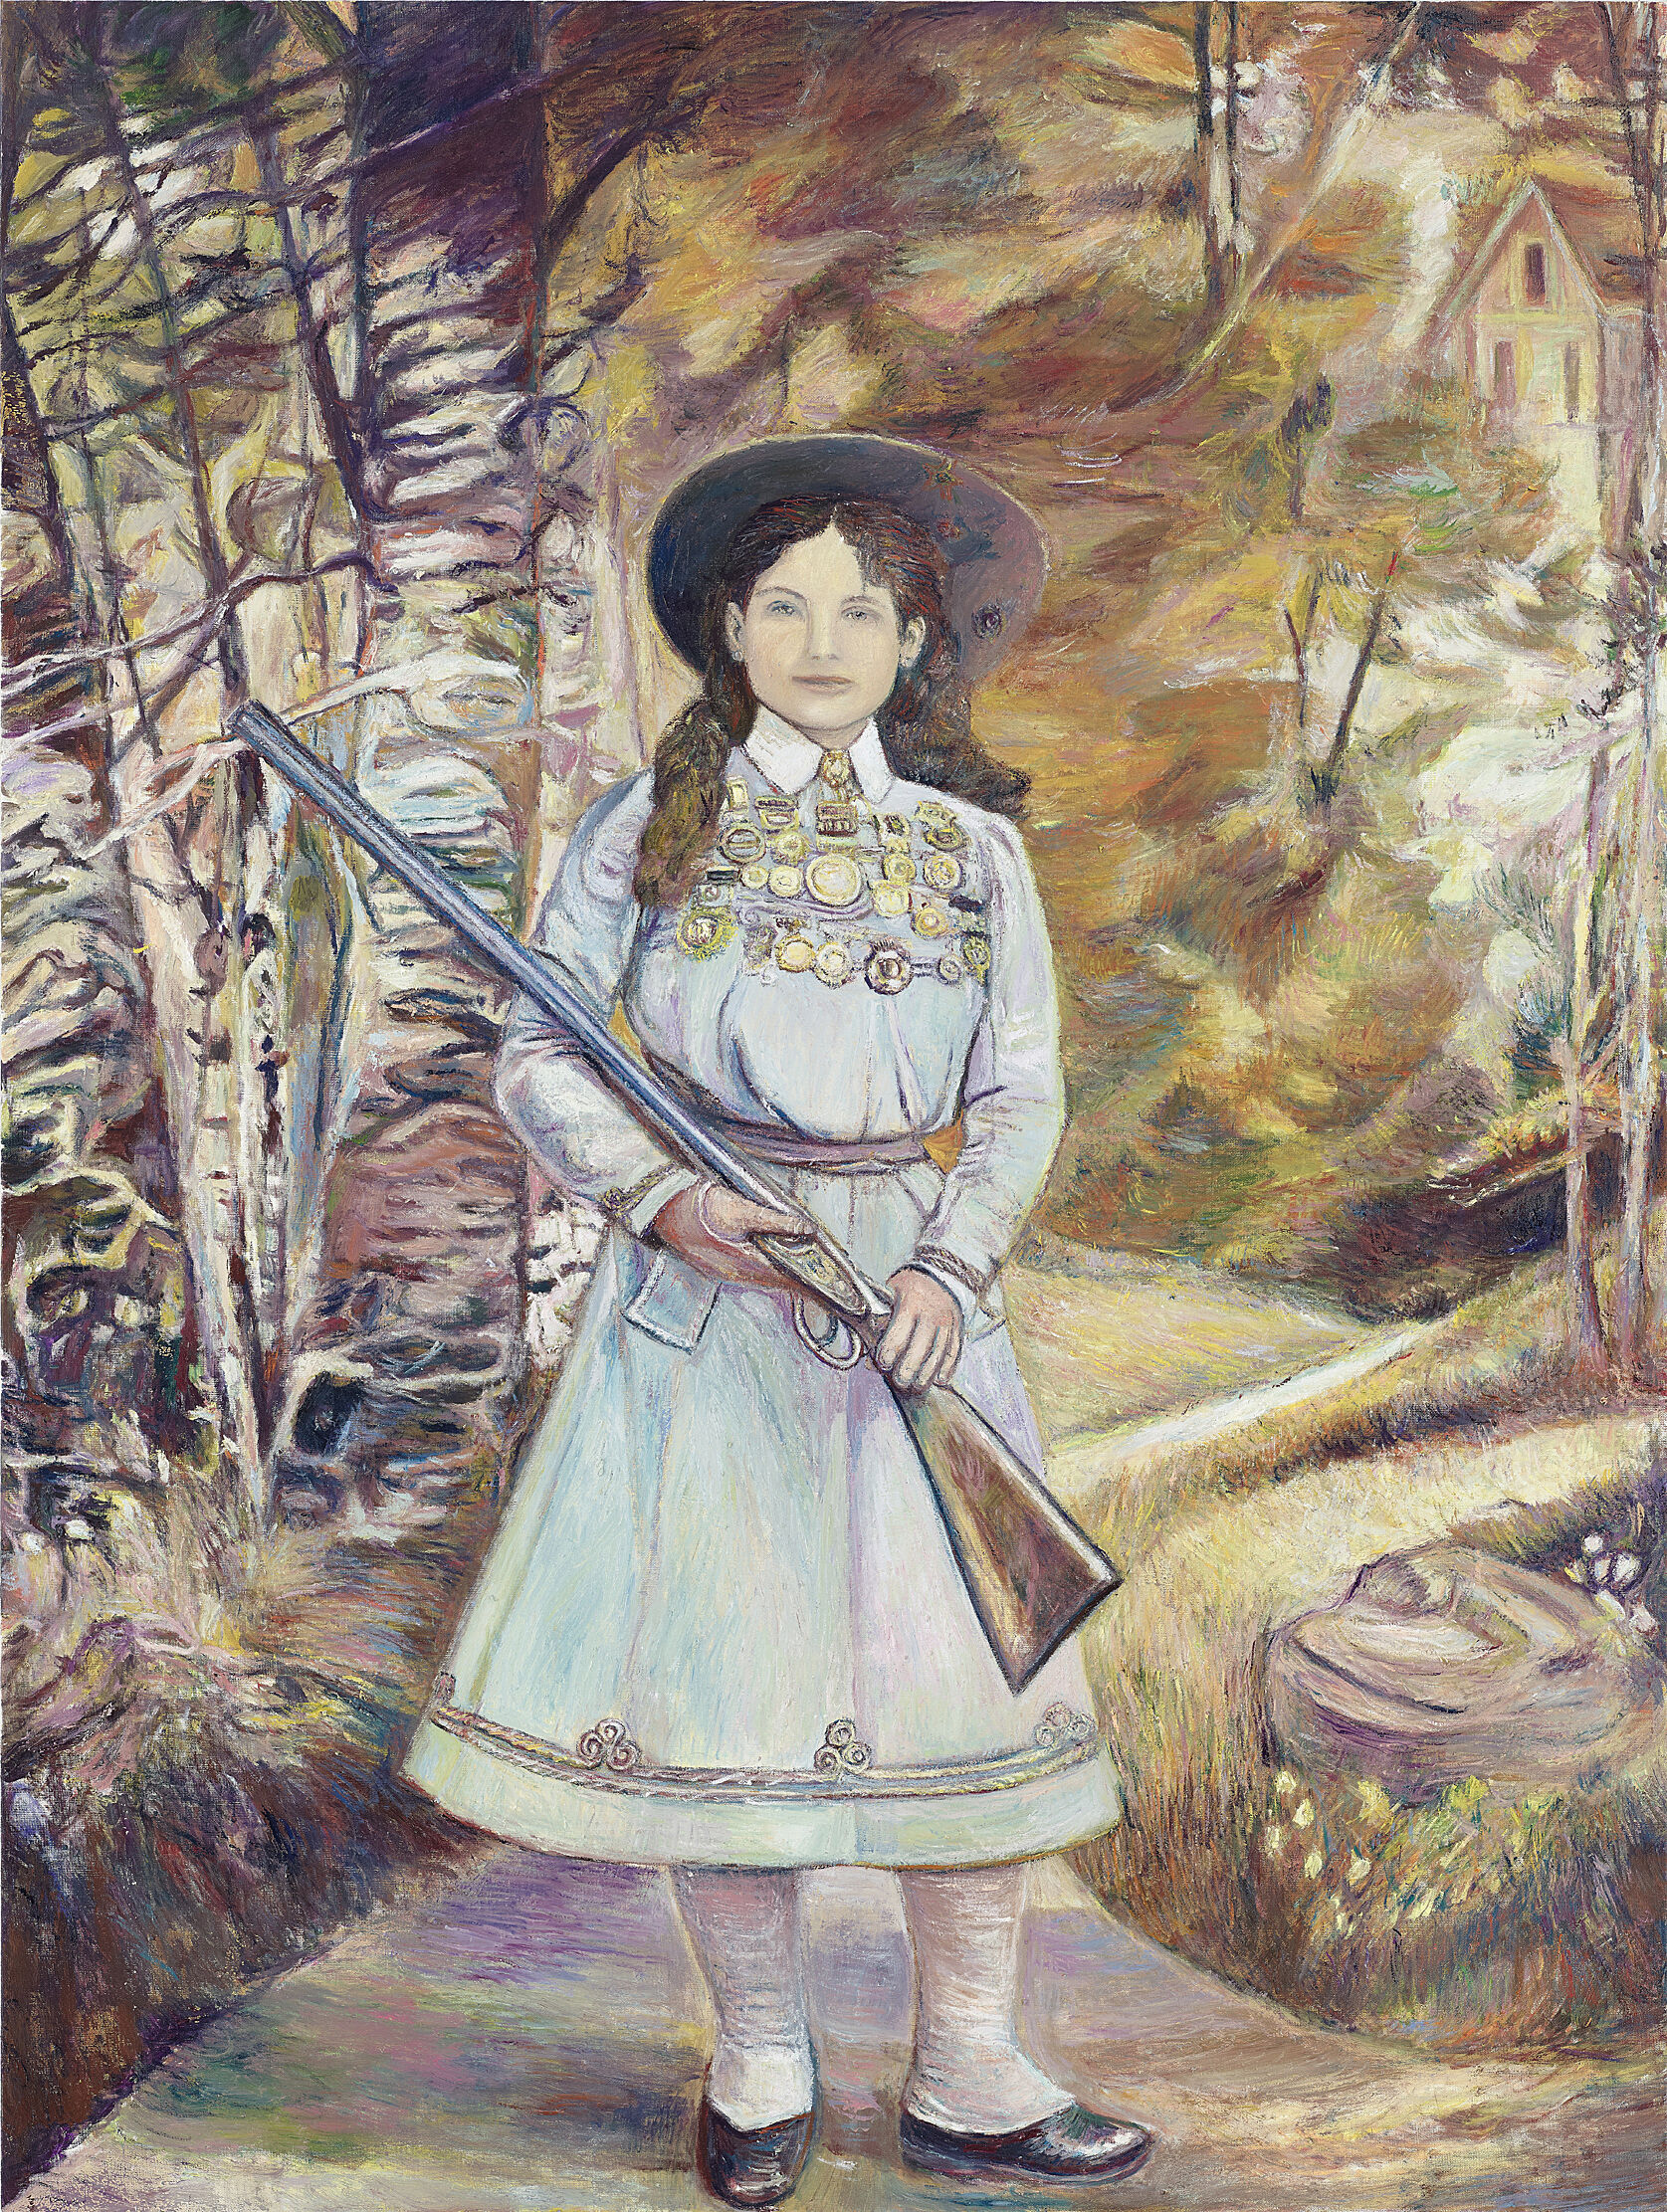 A painting of a girl holding a long gun.